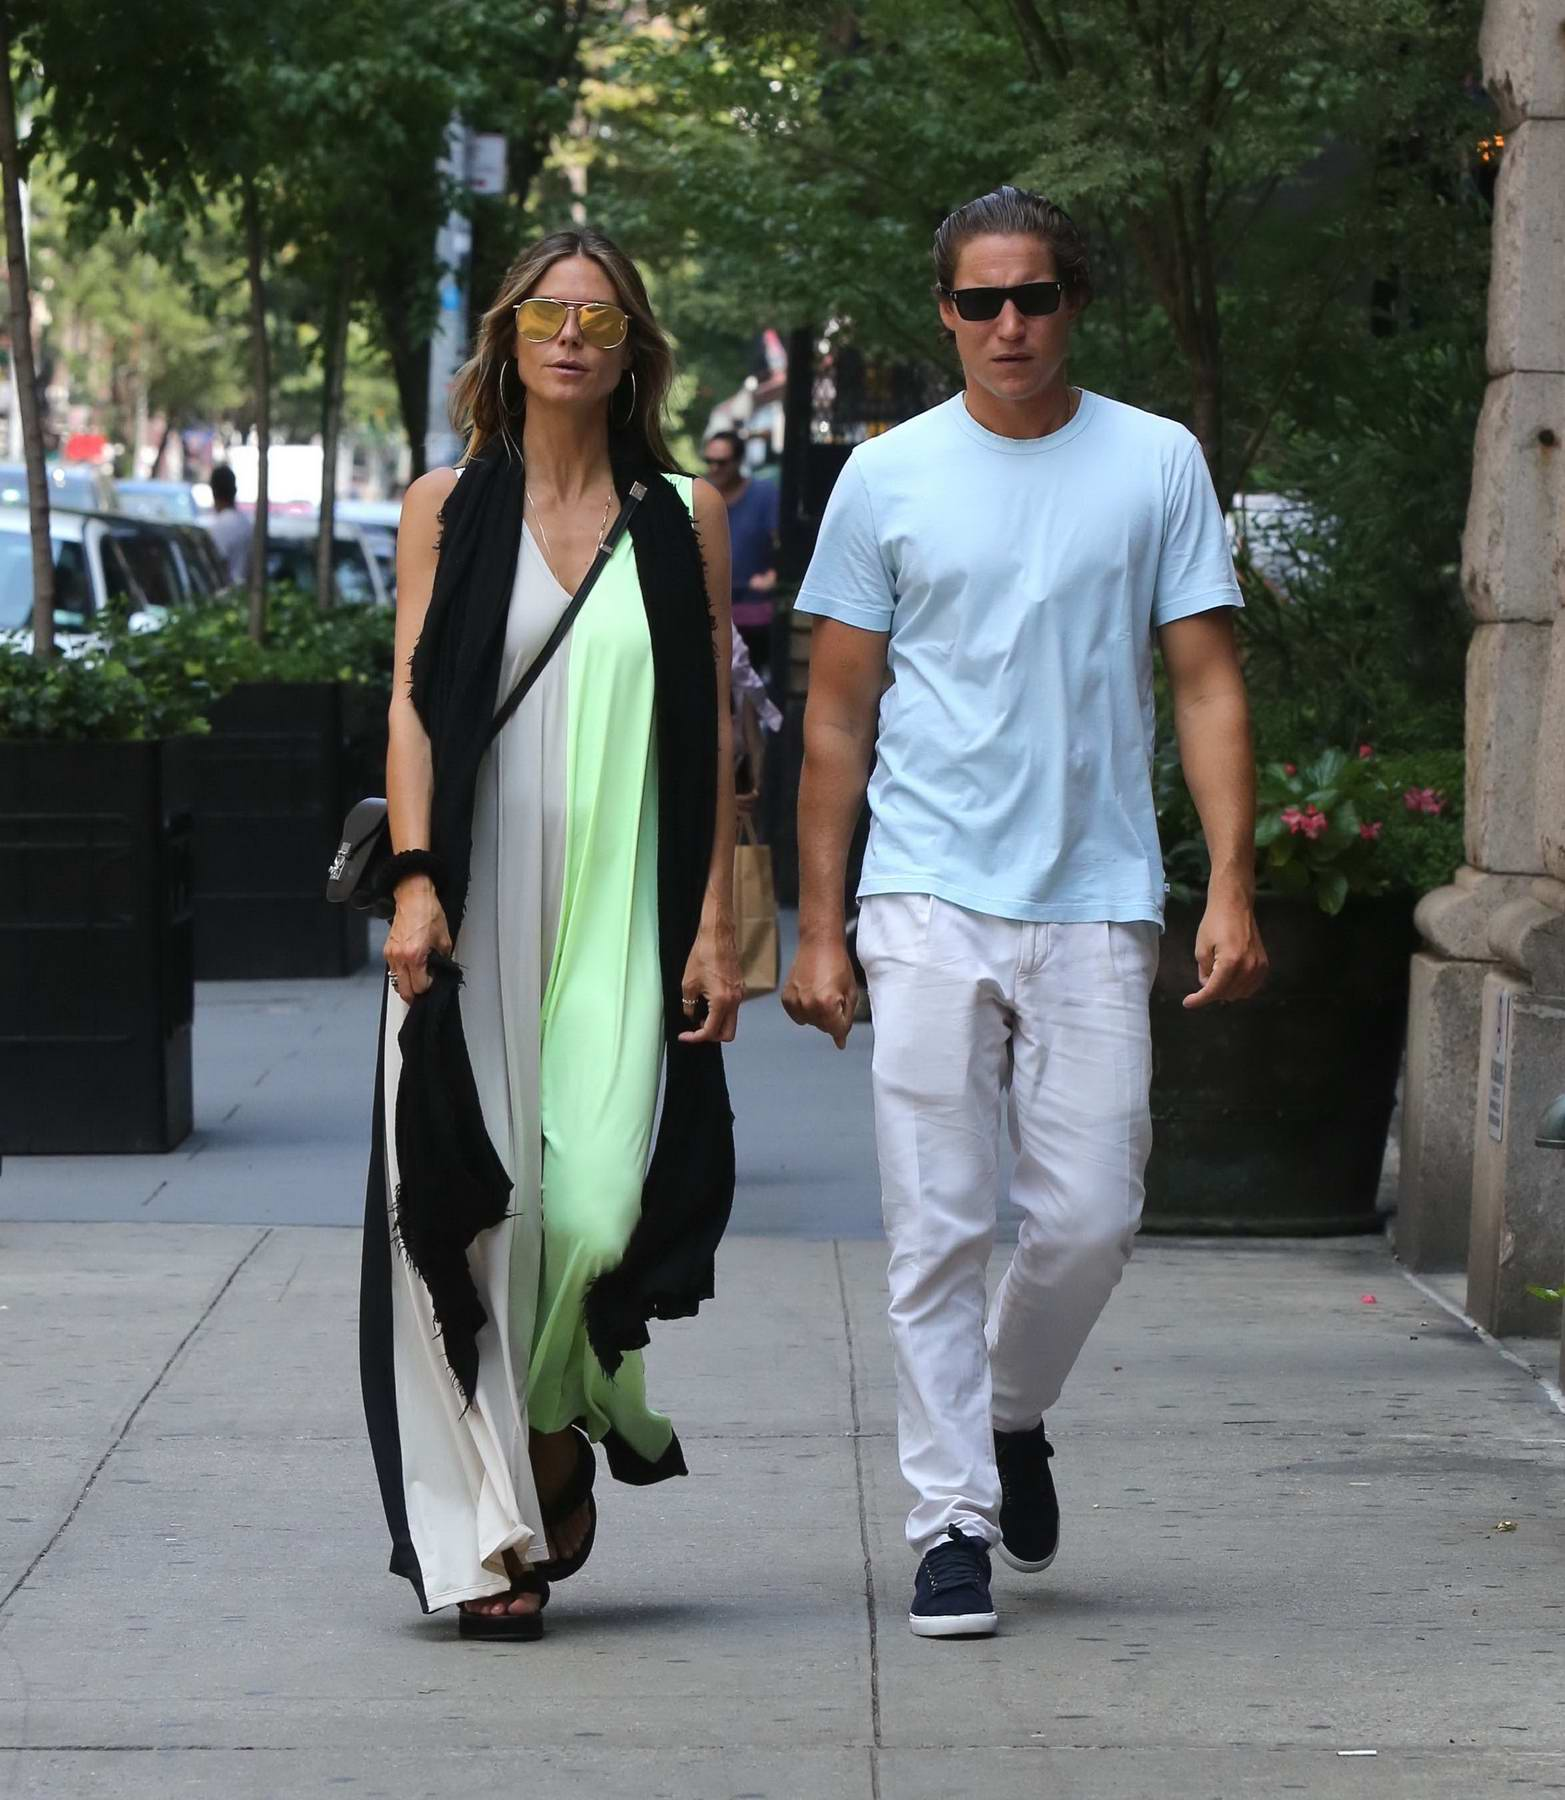 Heidi Klum and boyfriend Vito Schnabel out to lunch in New York